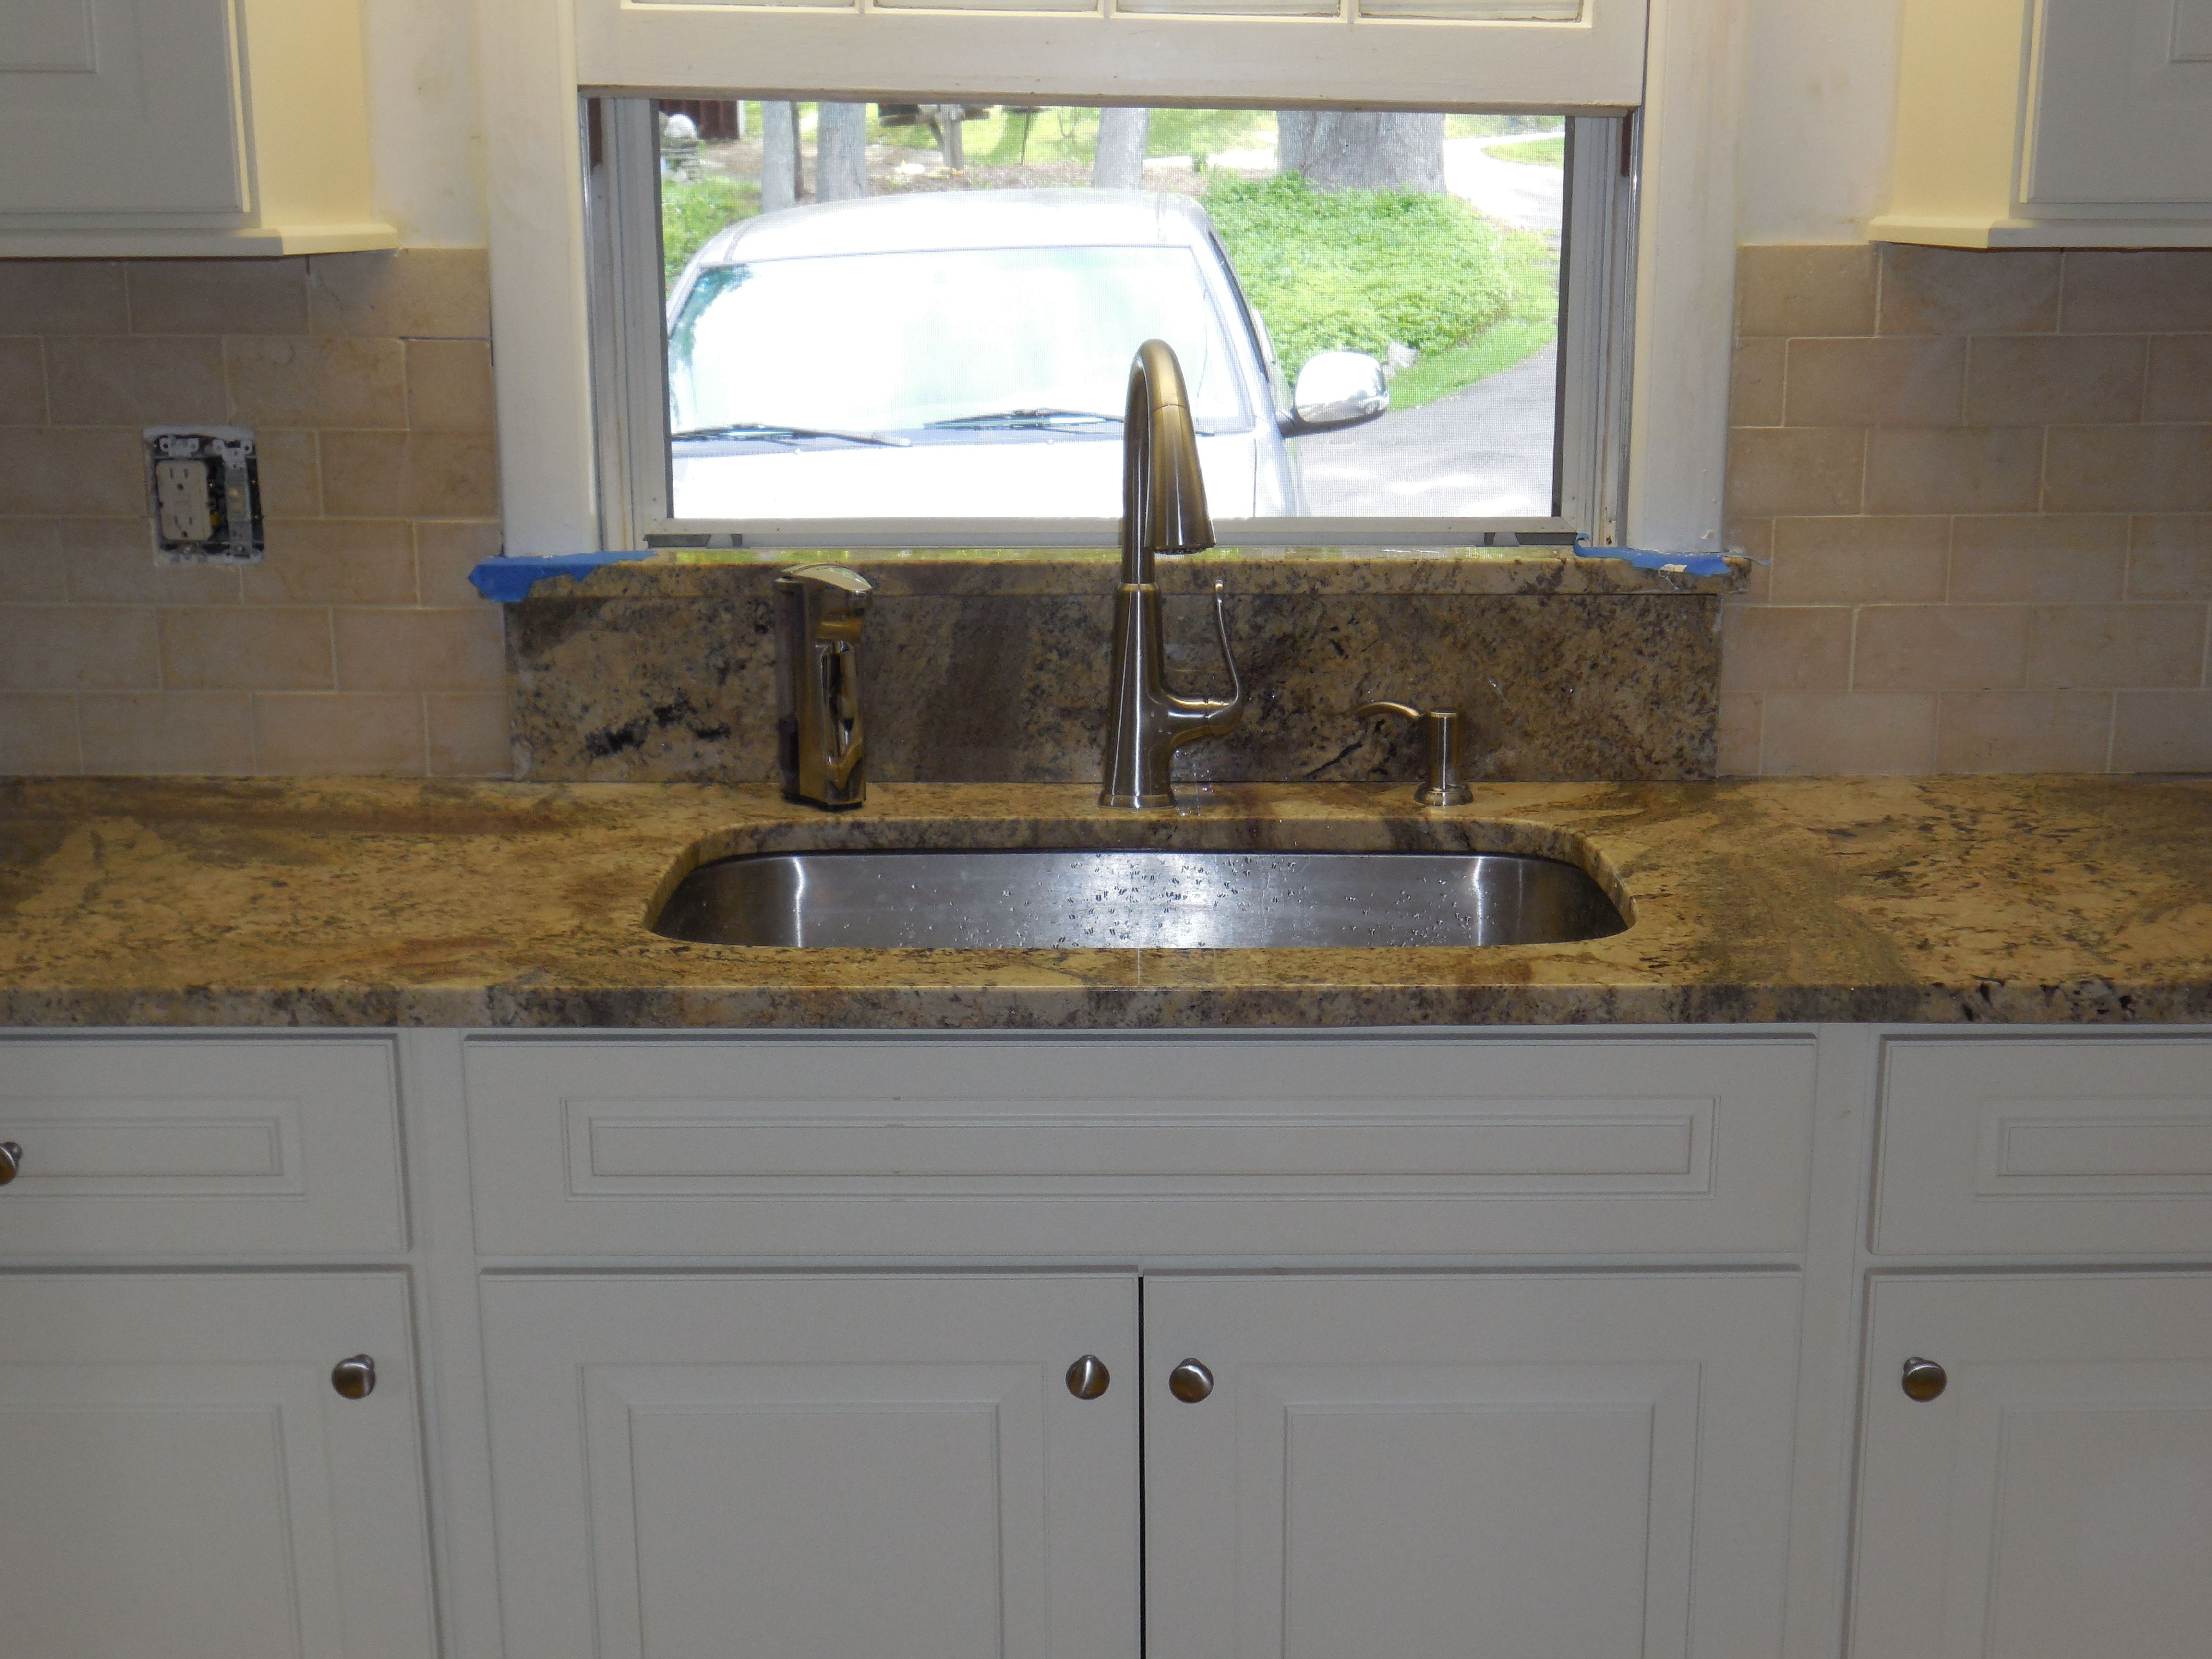 Kitchen Sink With Backsplash Lowes Trash Cans Undermount Granite Window Sill Limestone